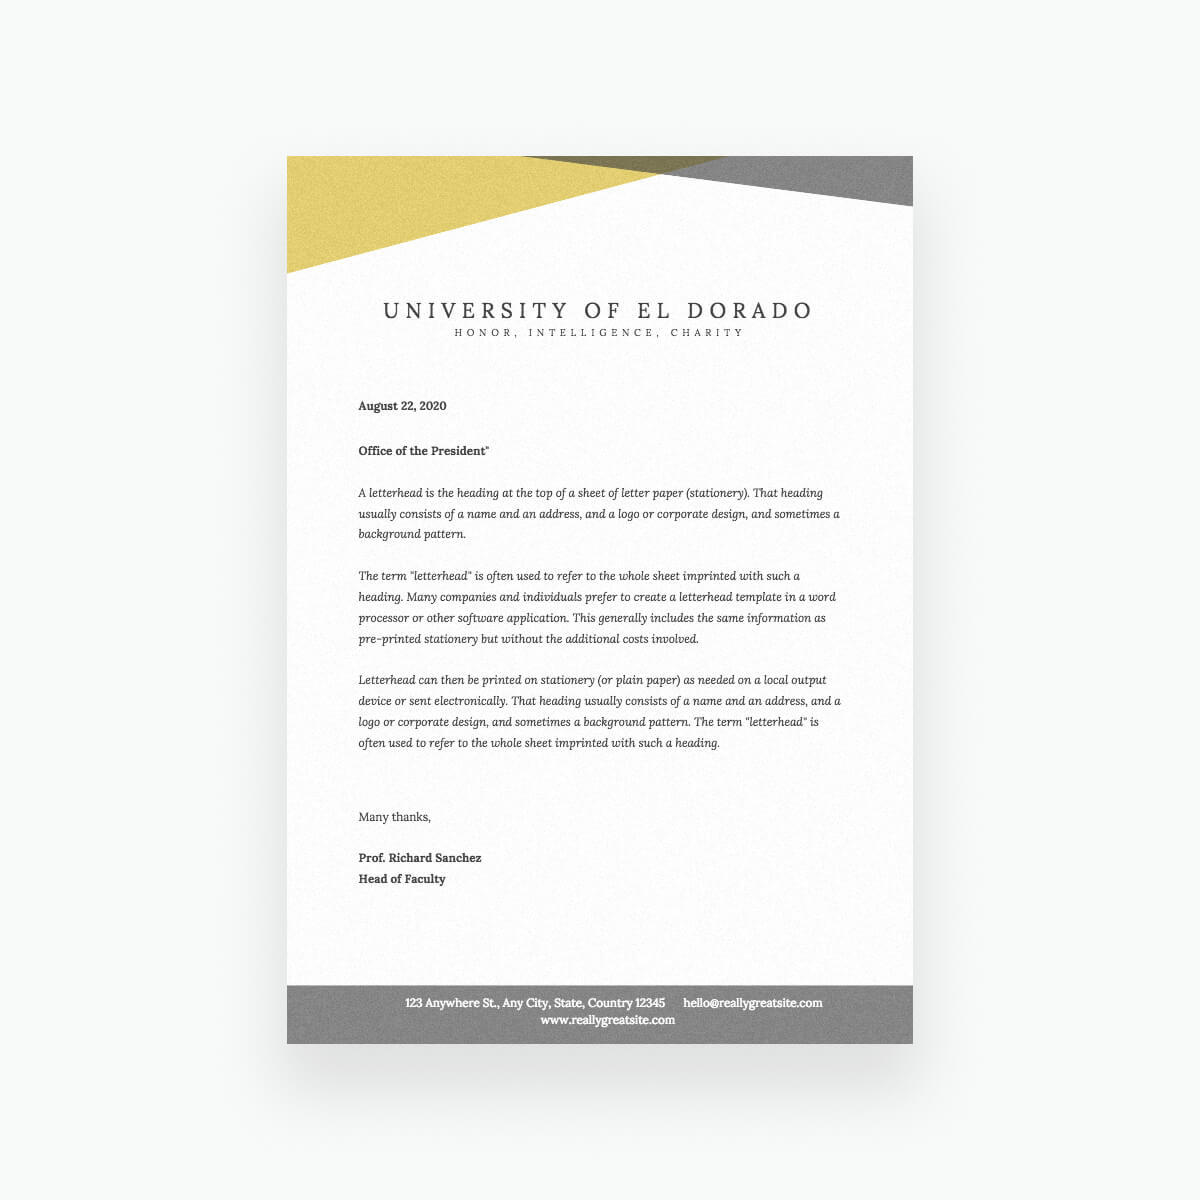 Free Online Letterhead Maker With Stunning Designs - Canva throughout Headed Letter Template Word